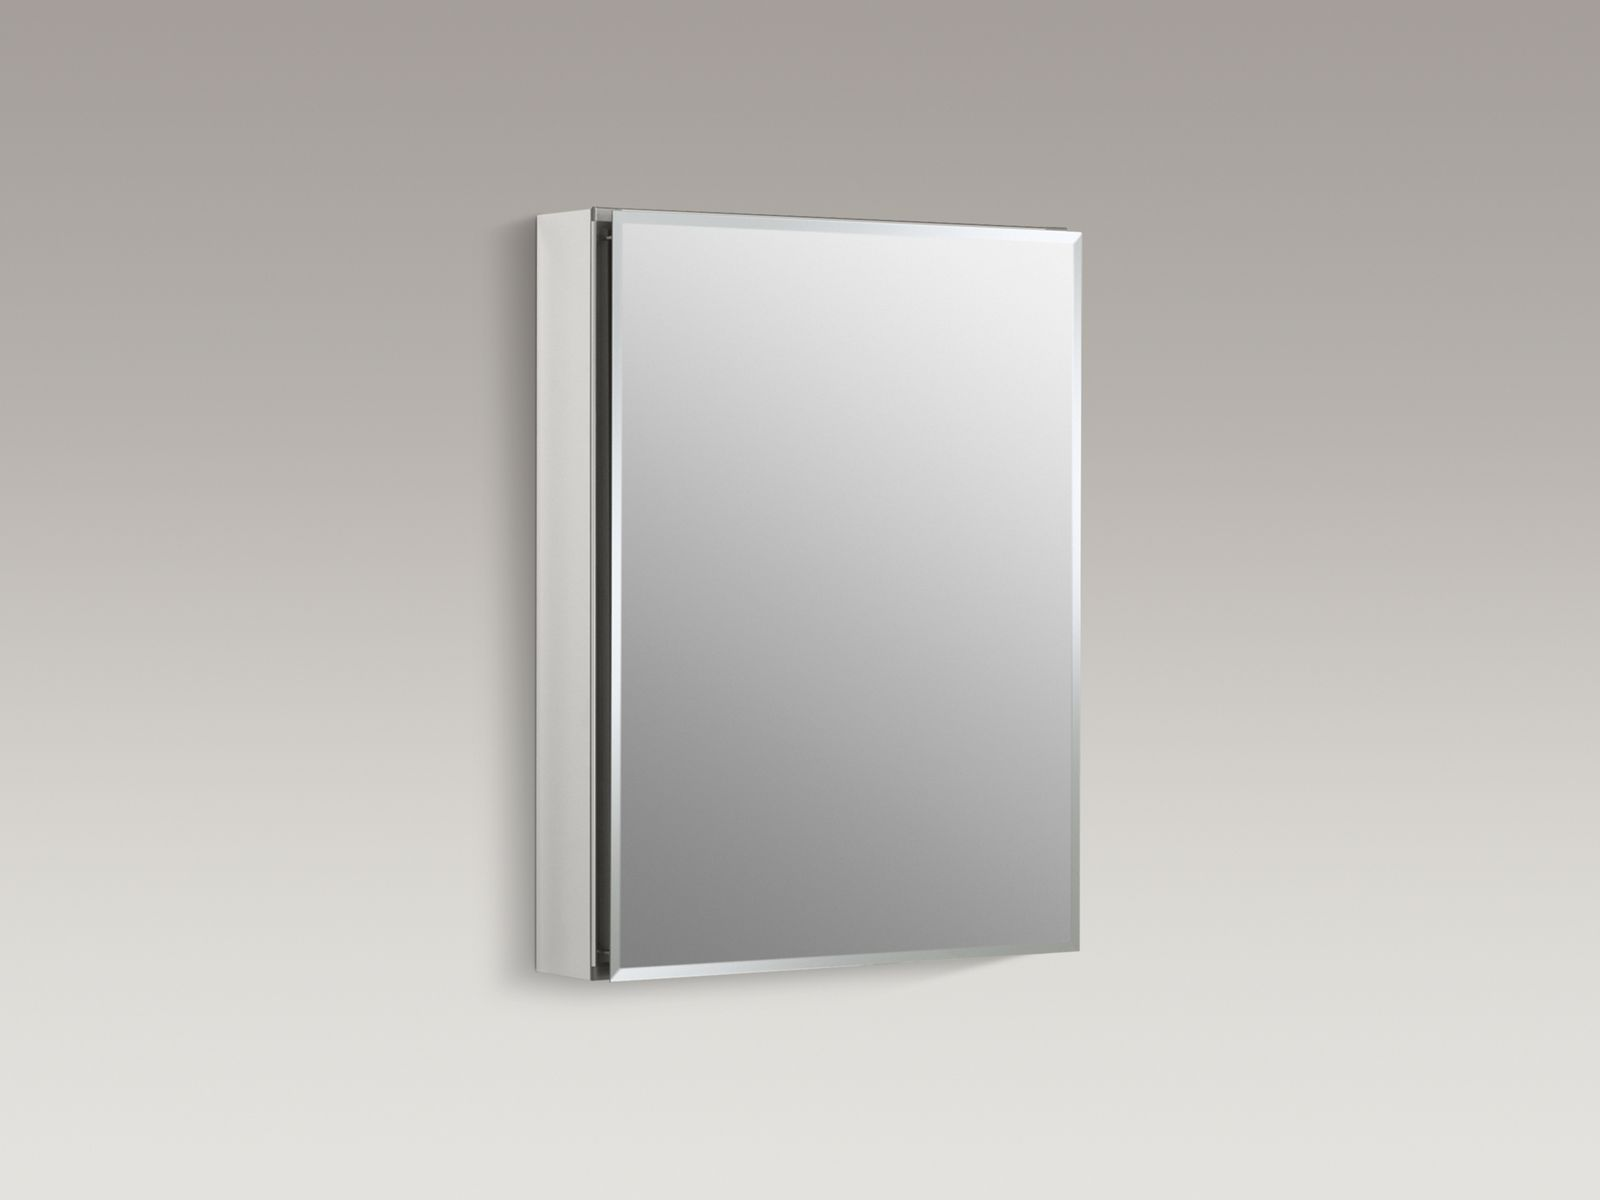 "20"" W x 26"" H aluminum single-door medicine cabinet with square mirrored door"